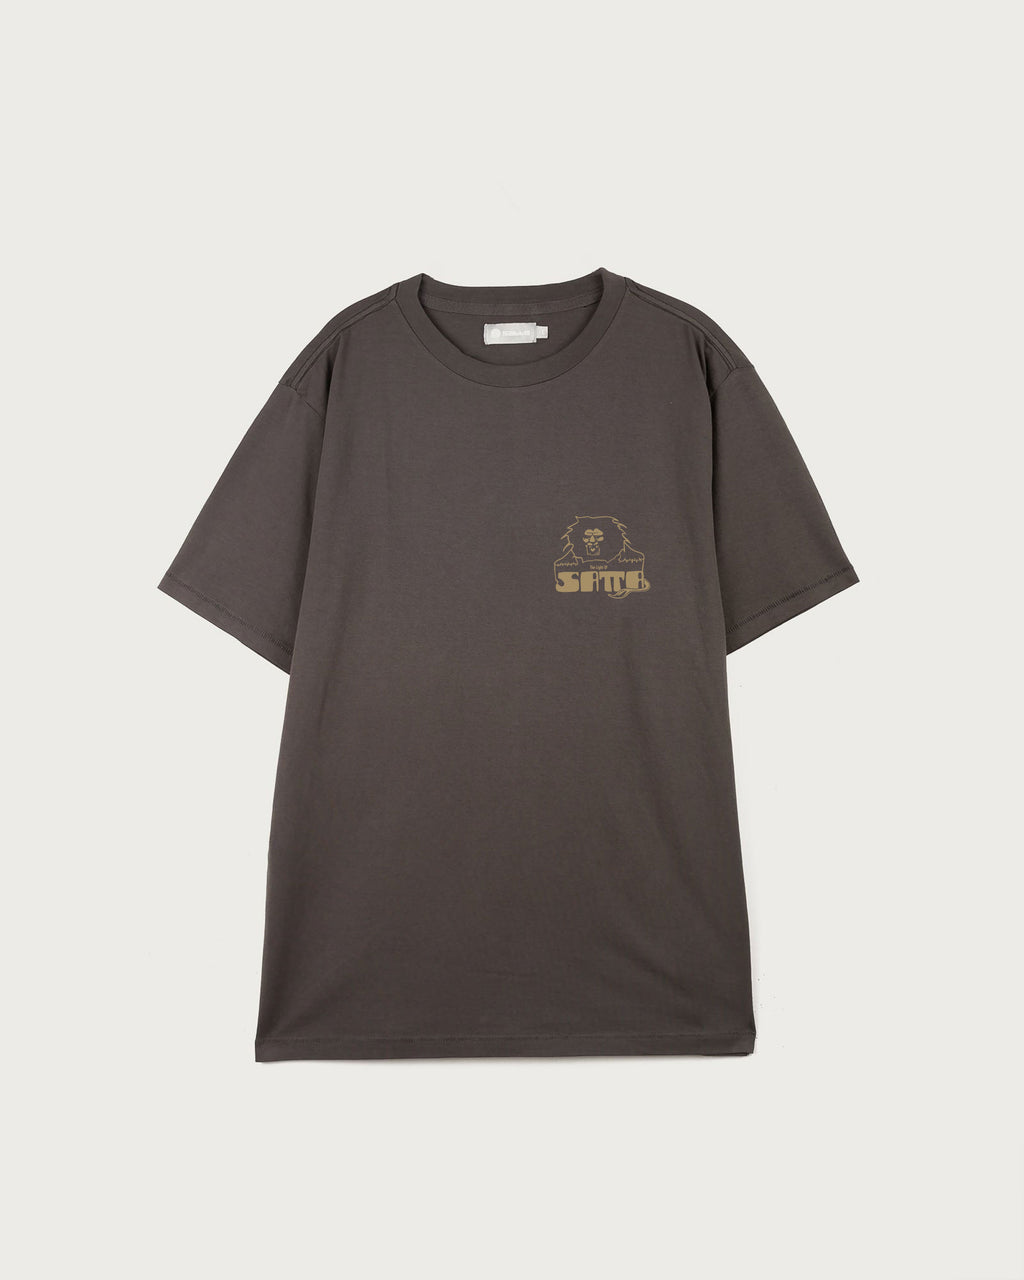 Satta Light Of Satta Tee - Washed Black | SATTA